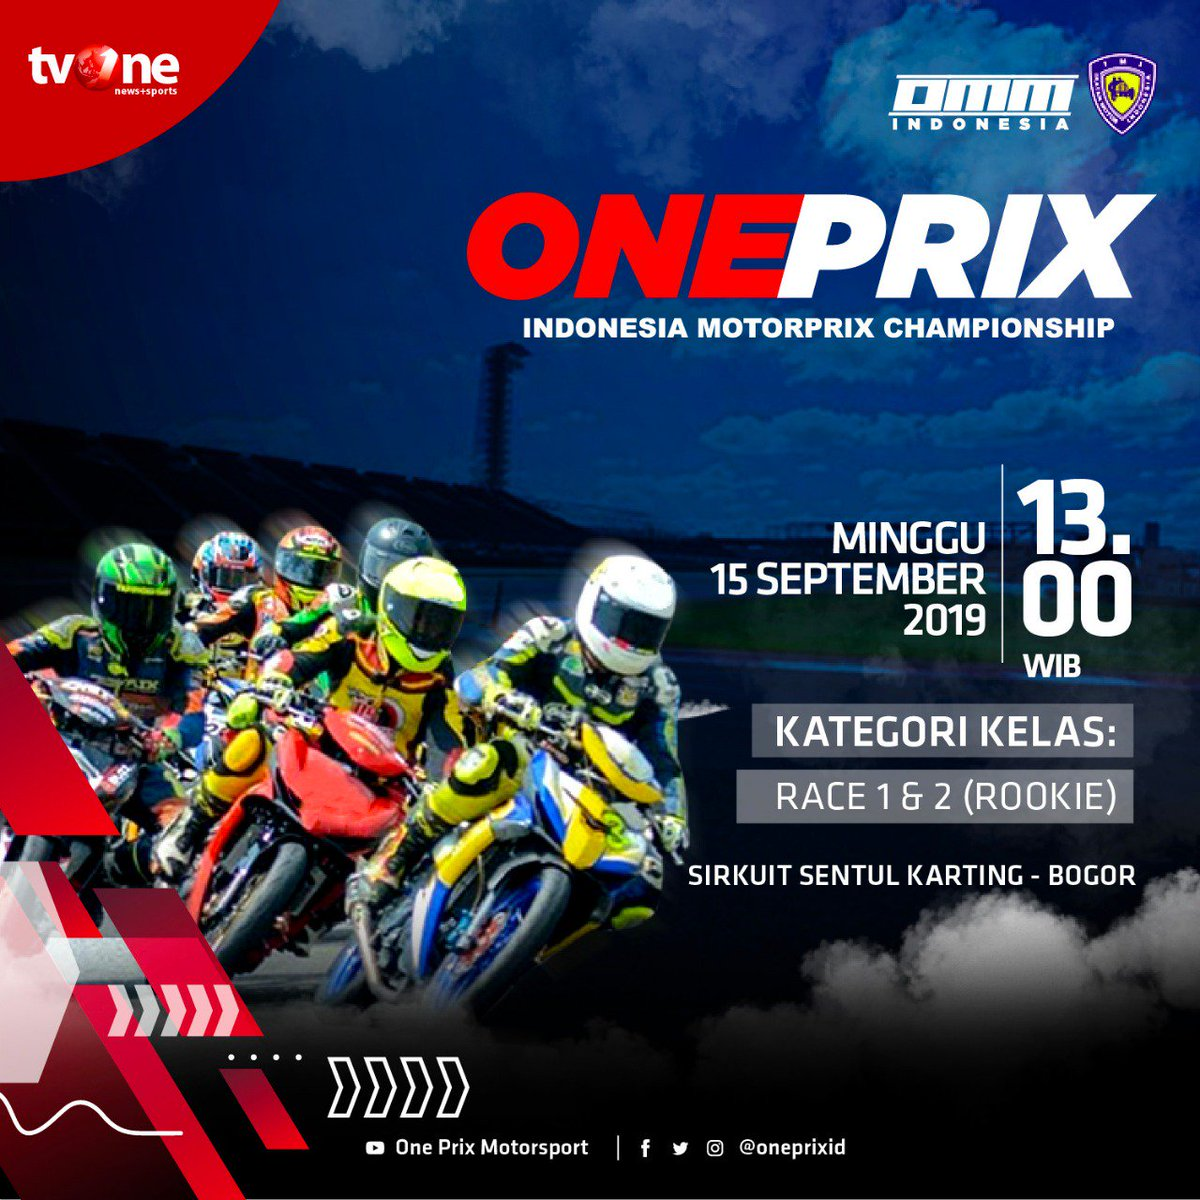 Jangan lewatkan race seru putaran 3 Oneprix Indonesia Motorprix Championship kelas Rookie. Minggu, 15 September 2019 jam 13.00 WIB hanya di tvOne & streaming di tvOne connect android http://bit.ly/2EMxVdm  & ios https://apple.co/2CPK6U3   #Oneprix #OneprixSentul